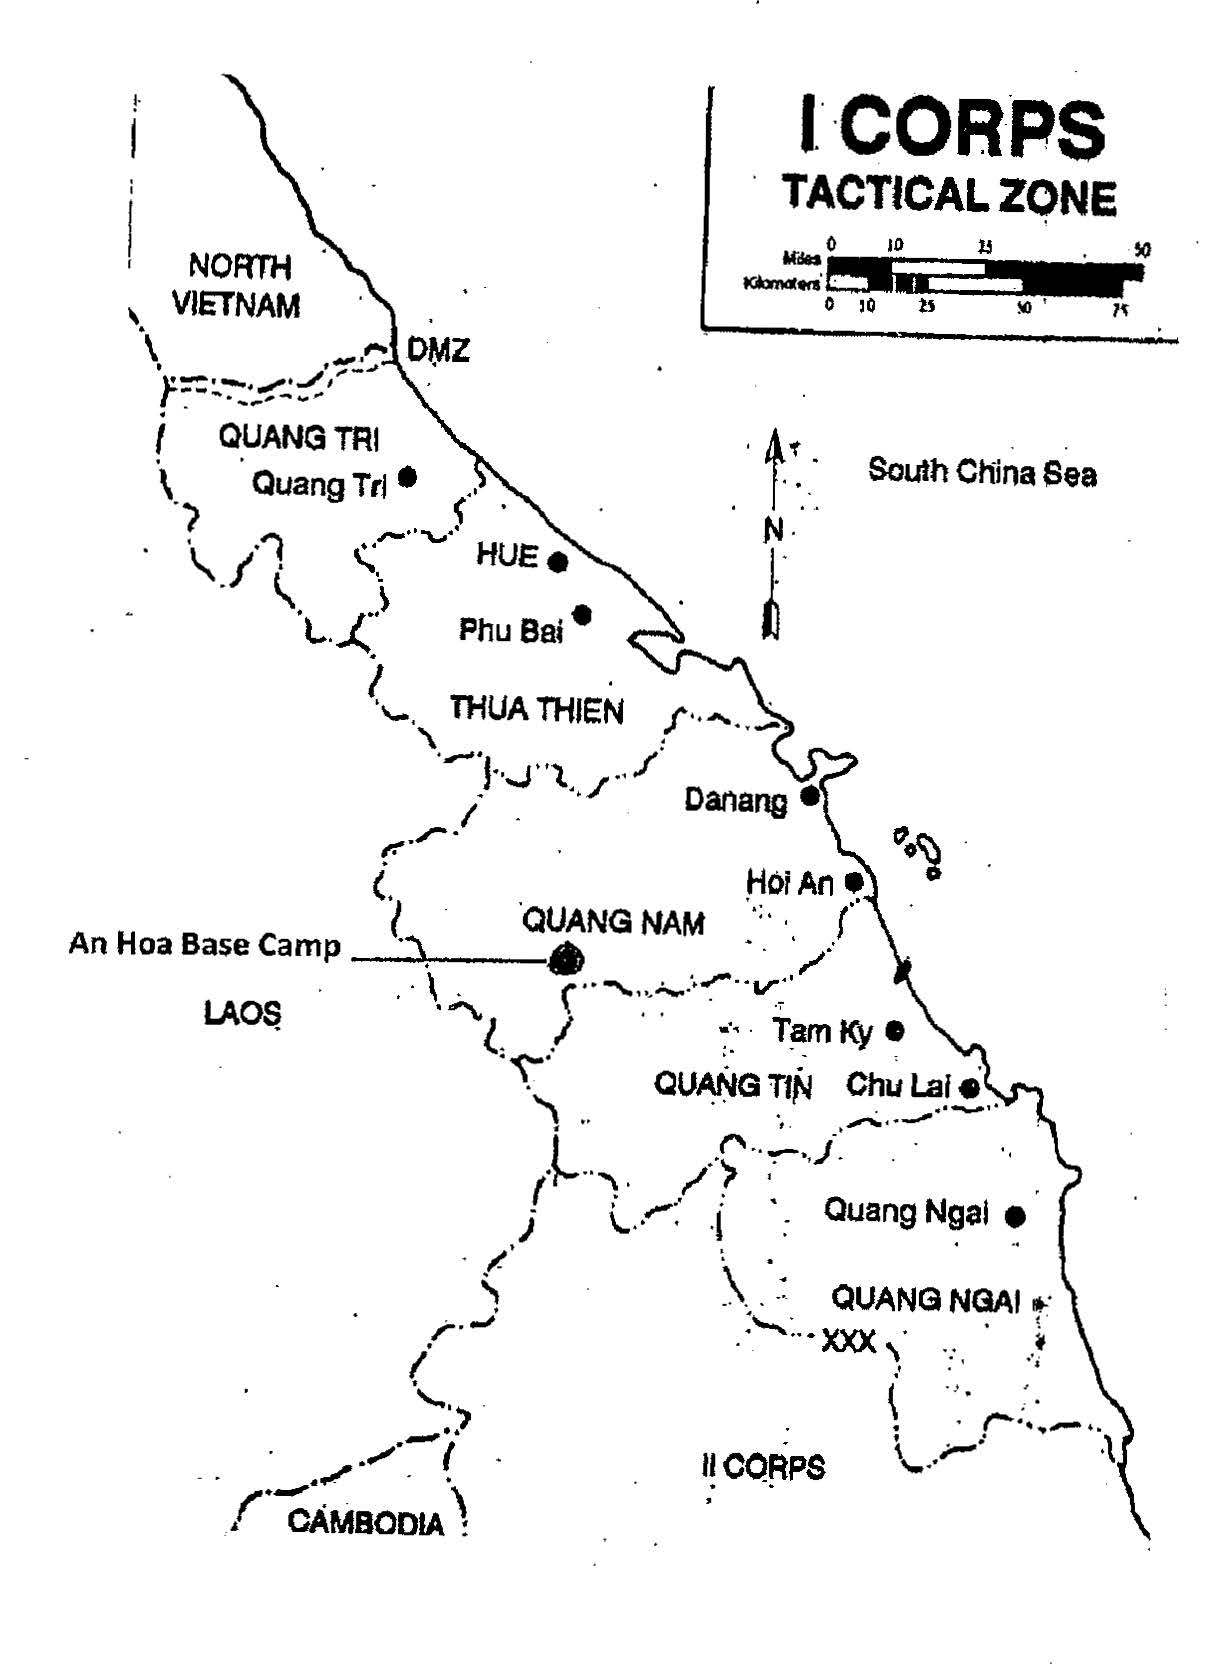 I Corps Tactical Zone map denoting locations of An Hoa base camp, Laos, Cambodia, and the DMZ. The author operated in the top three providences during his tours